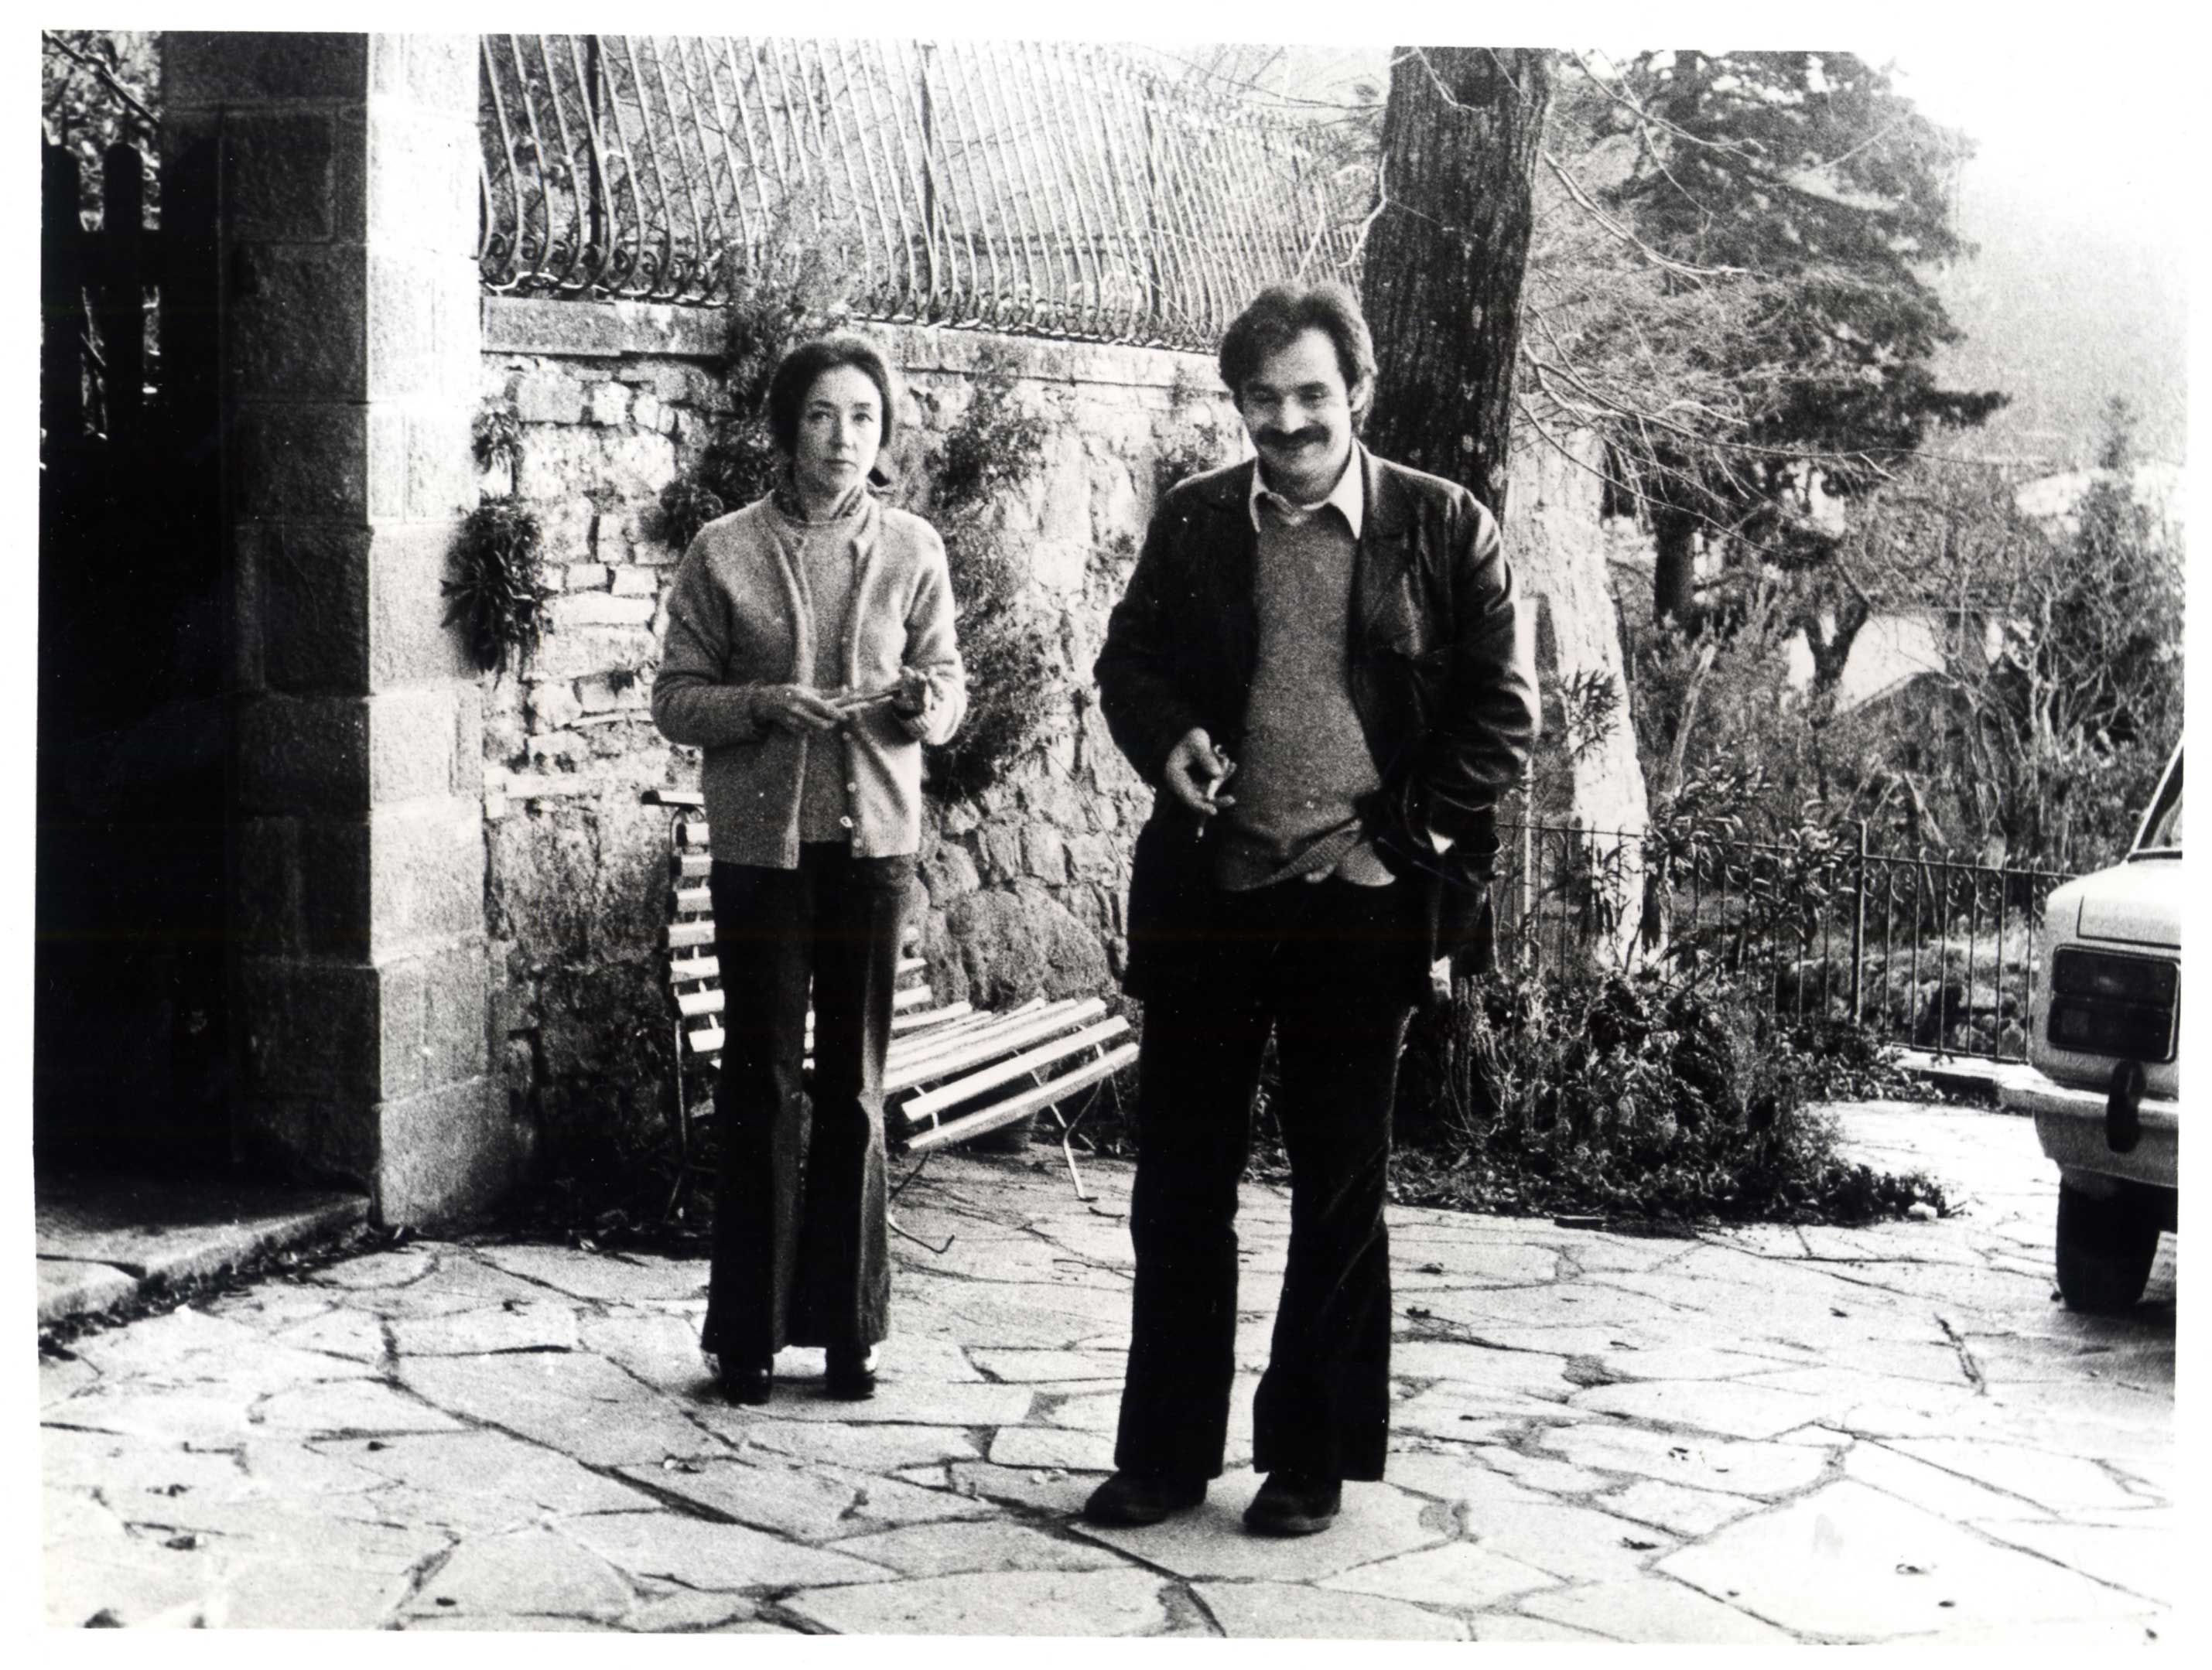 Oriana Fallaci With Her Great Love, Alekos Panagoulis, On Whom She Wrote A  Novel